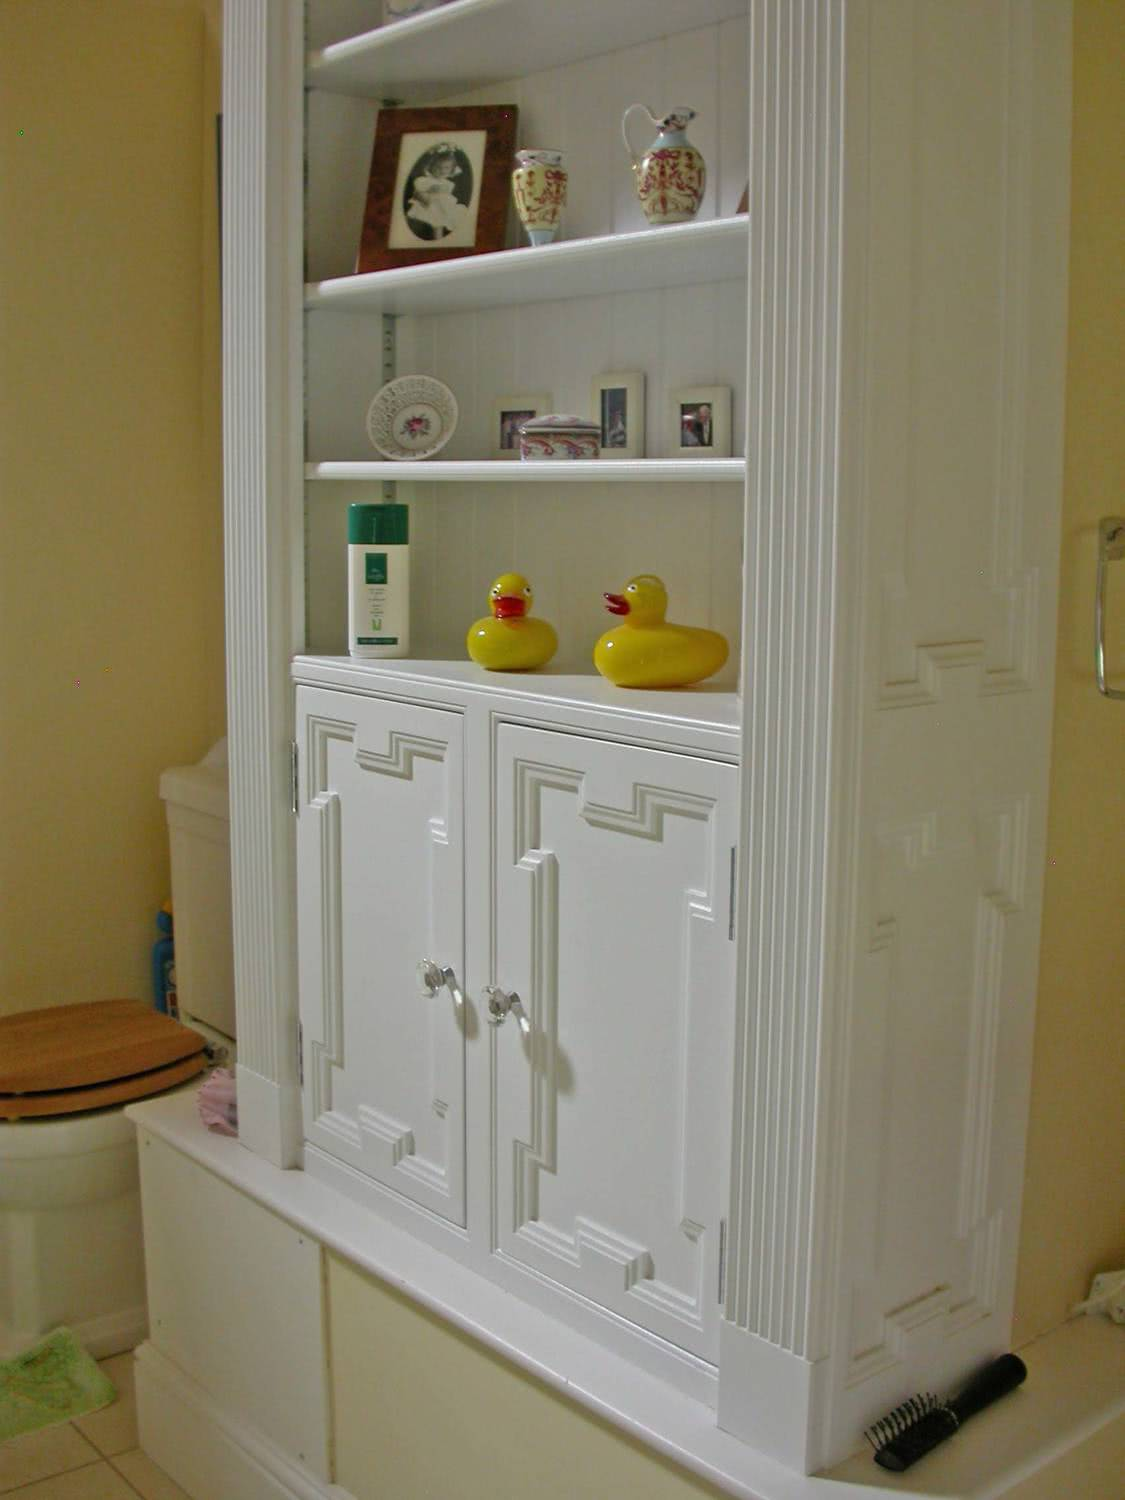 Lower section of fitted bathroom cabinets with open shelves. Moulded insert panels on each door with transparent door handles